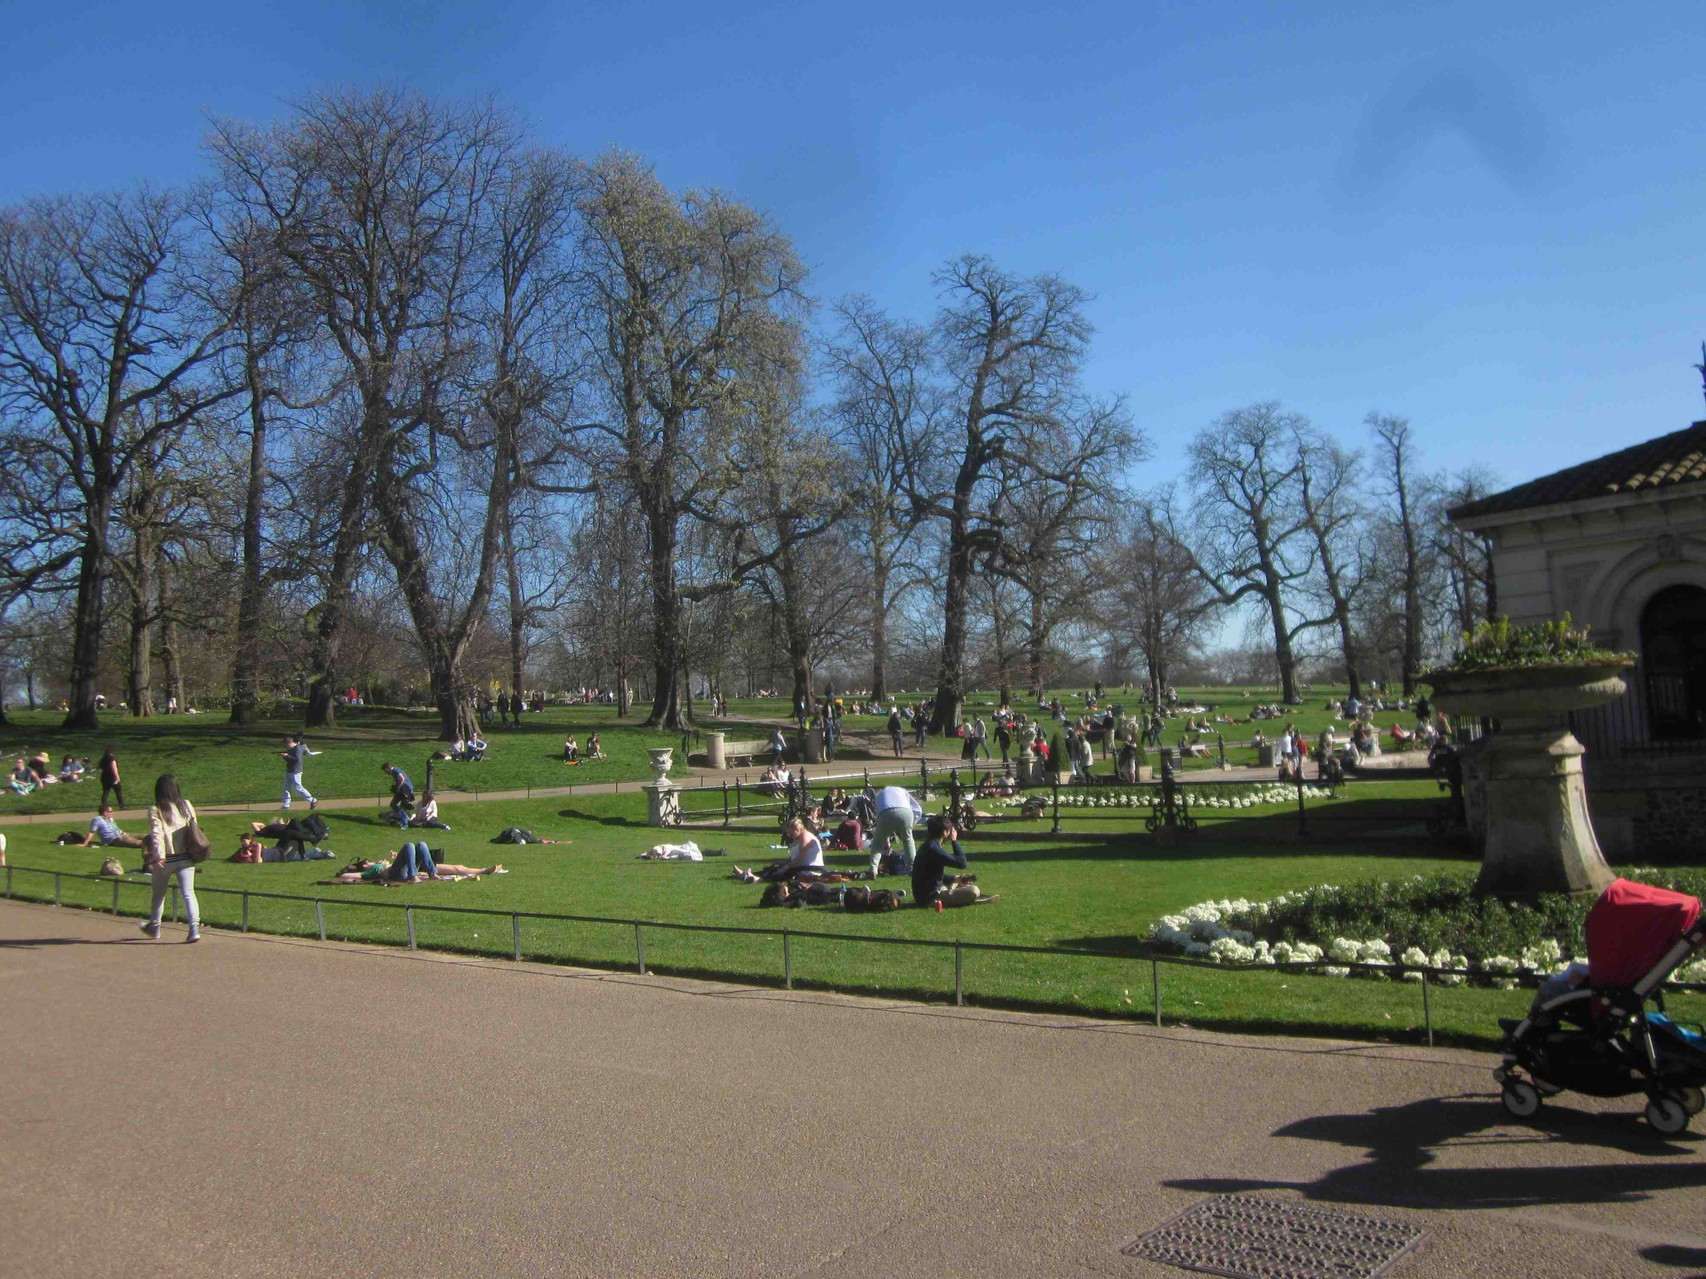 The spring has come to the Hyde Park